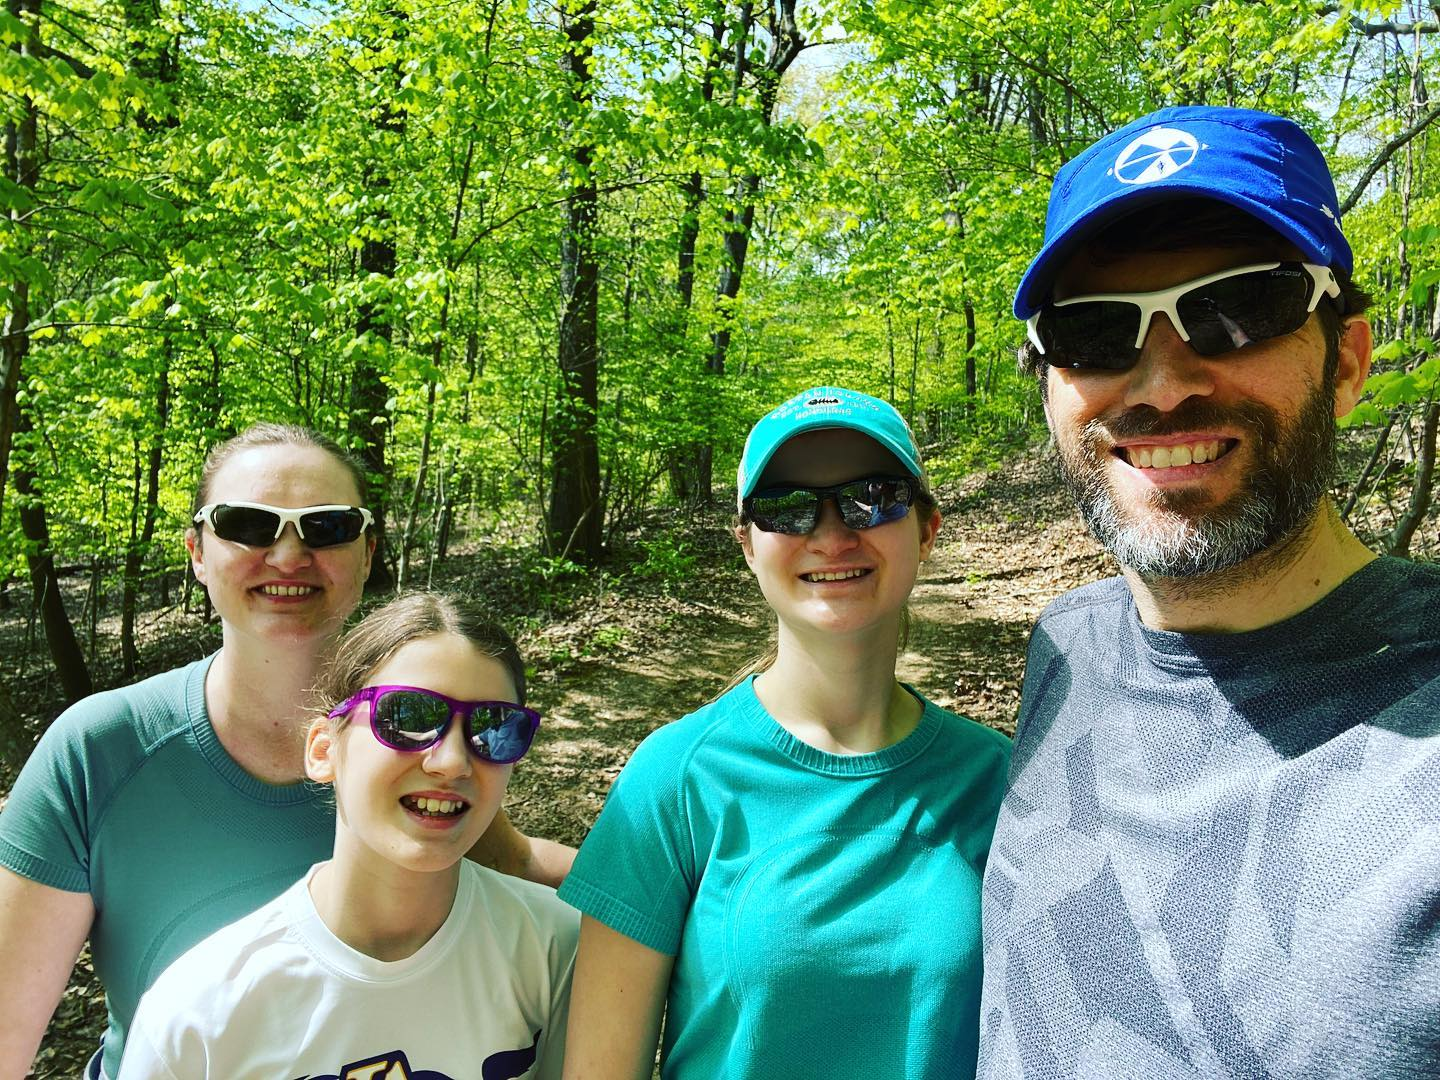 Burch Woods Trail - beautiful spring day for a hike. #family #hiking